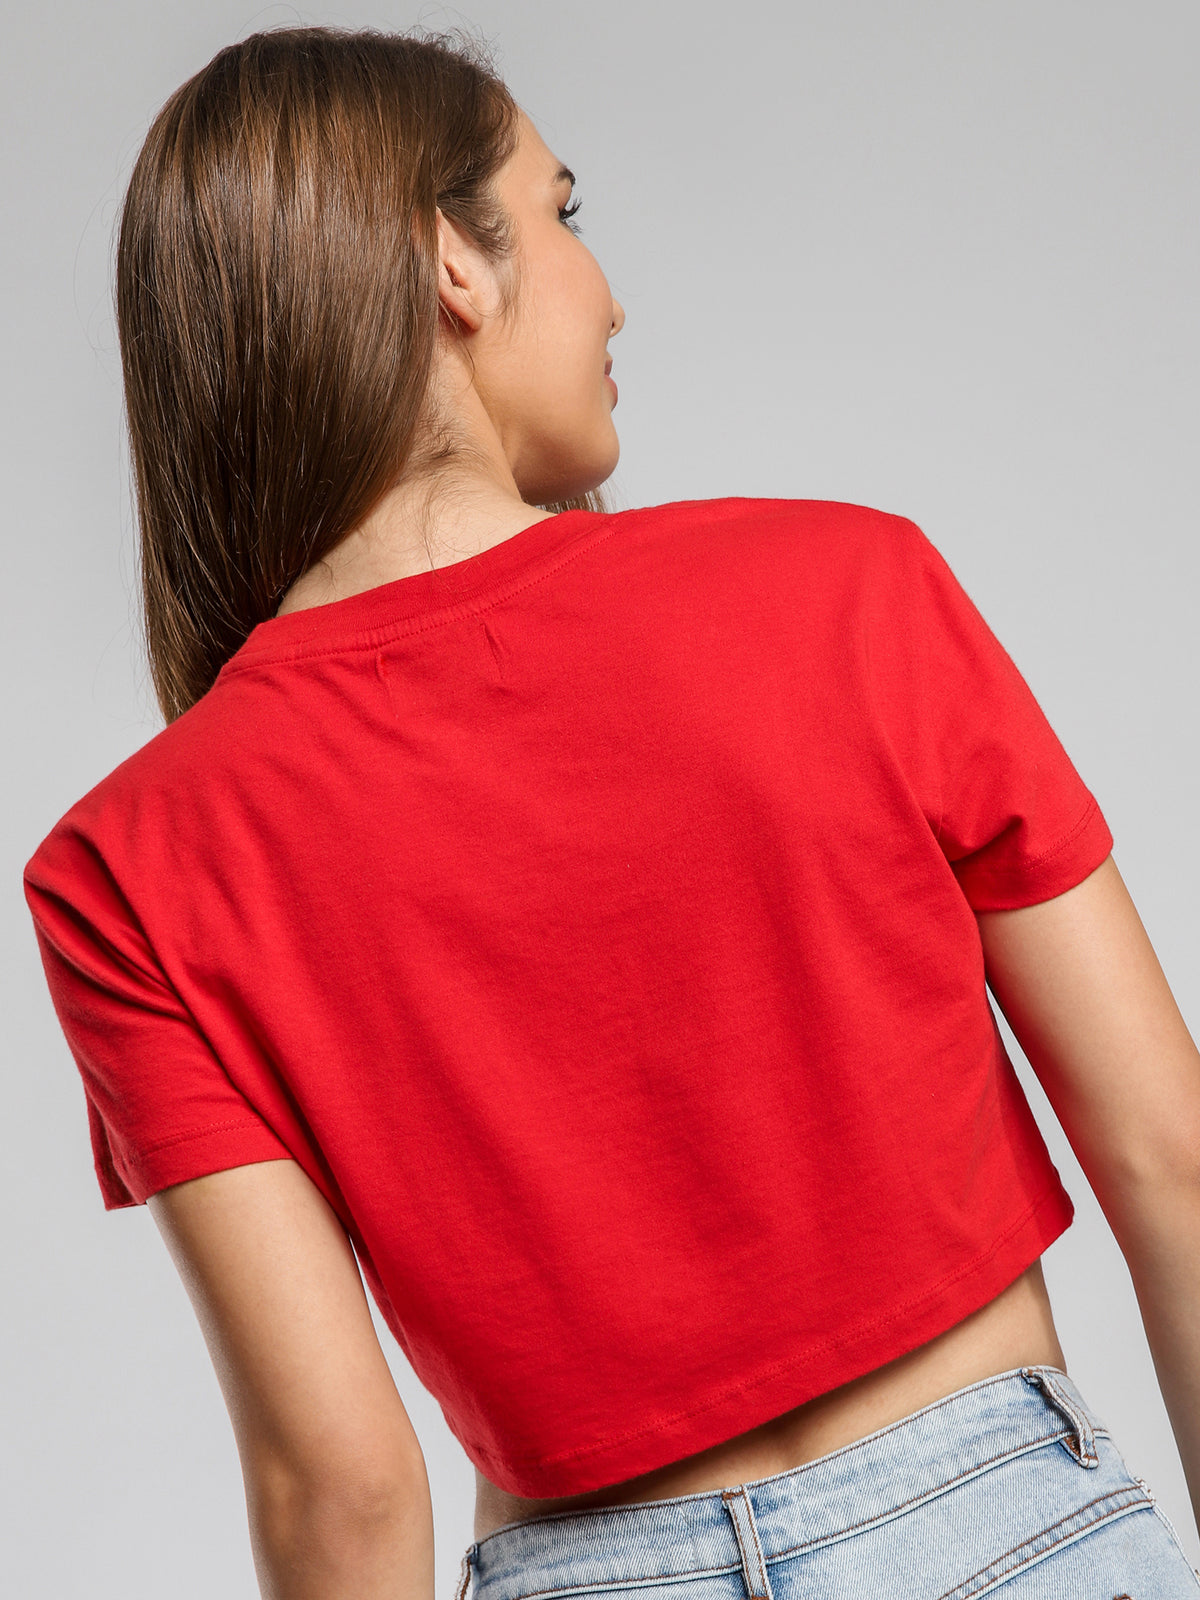 A Get Up Cropped T-Shirt in Red